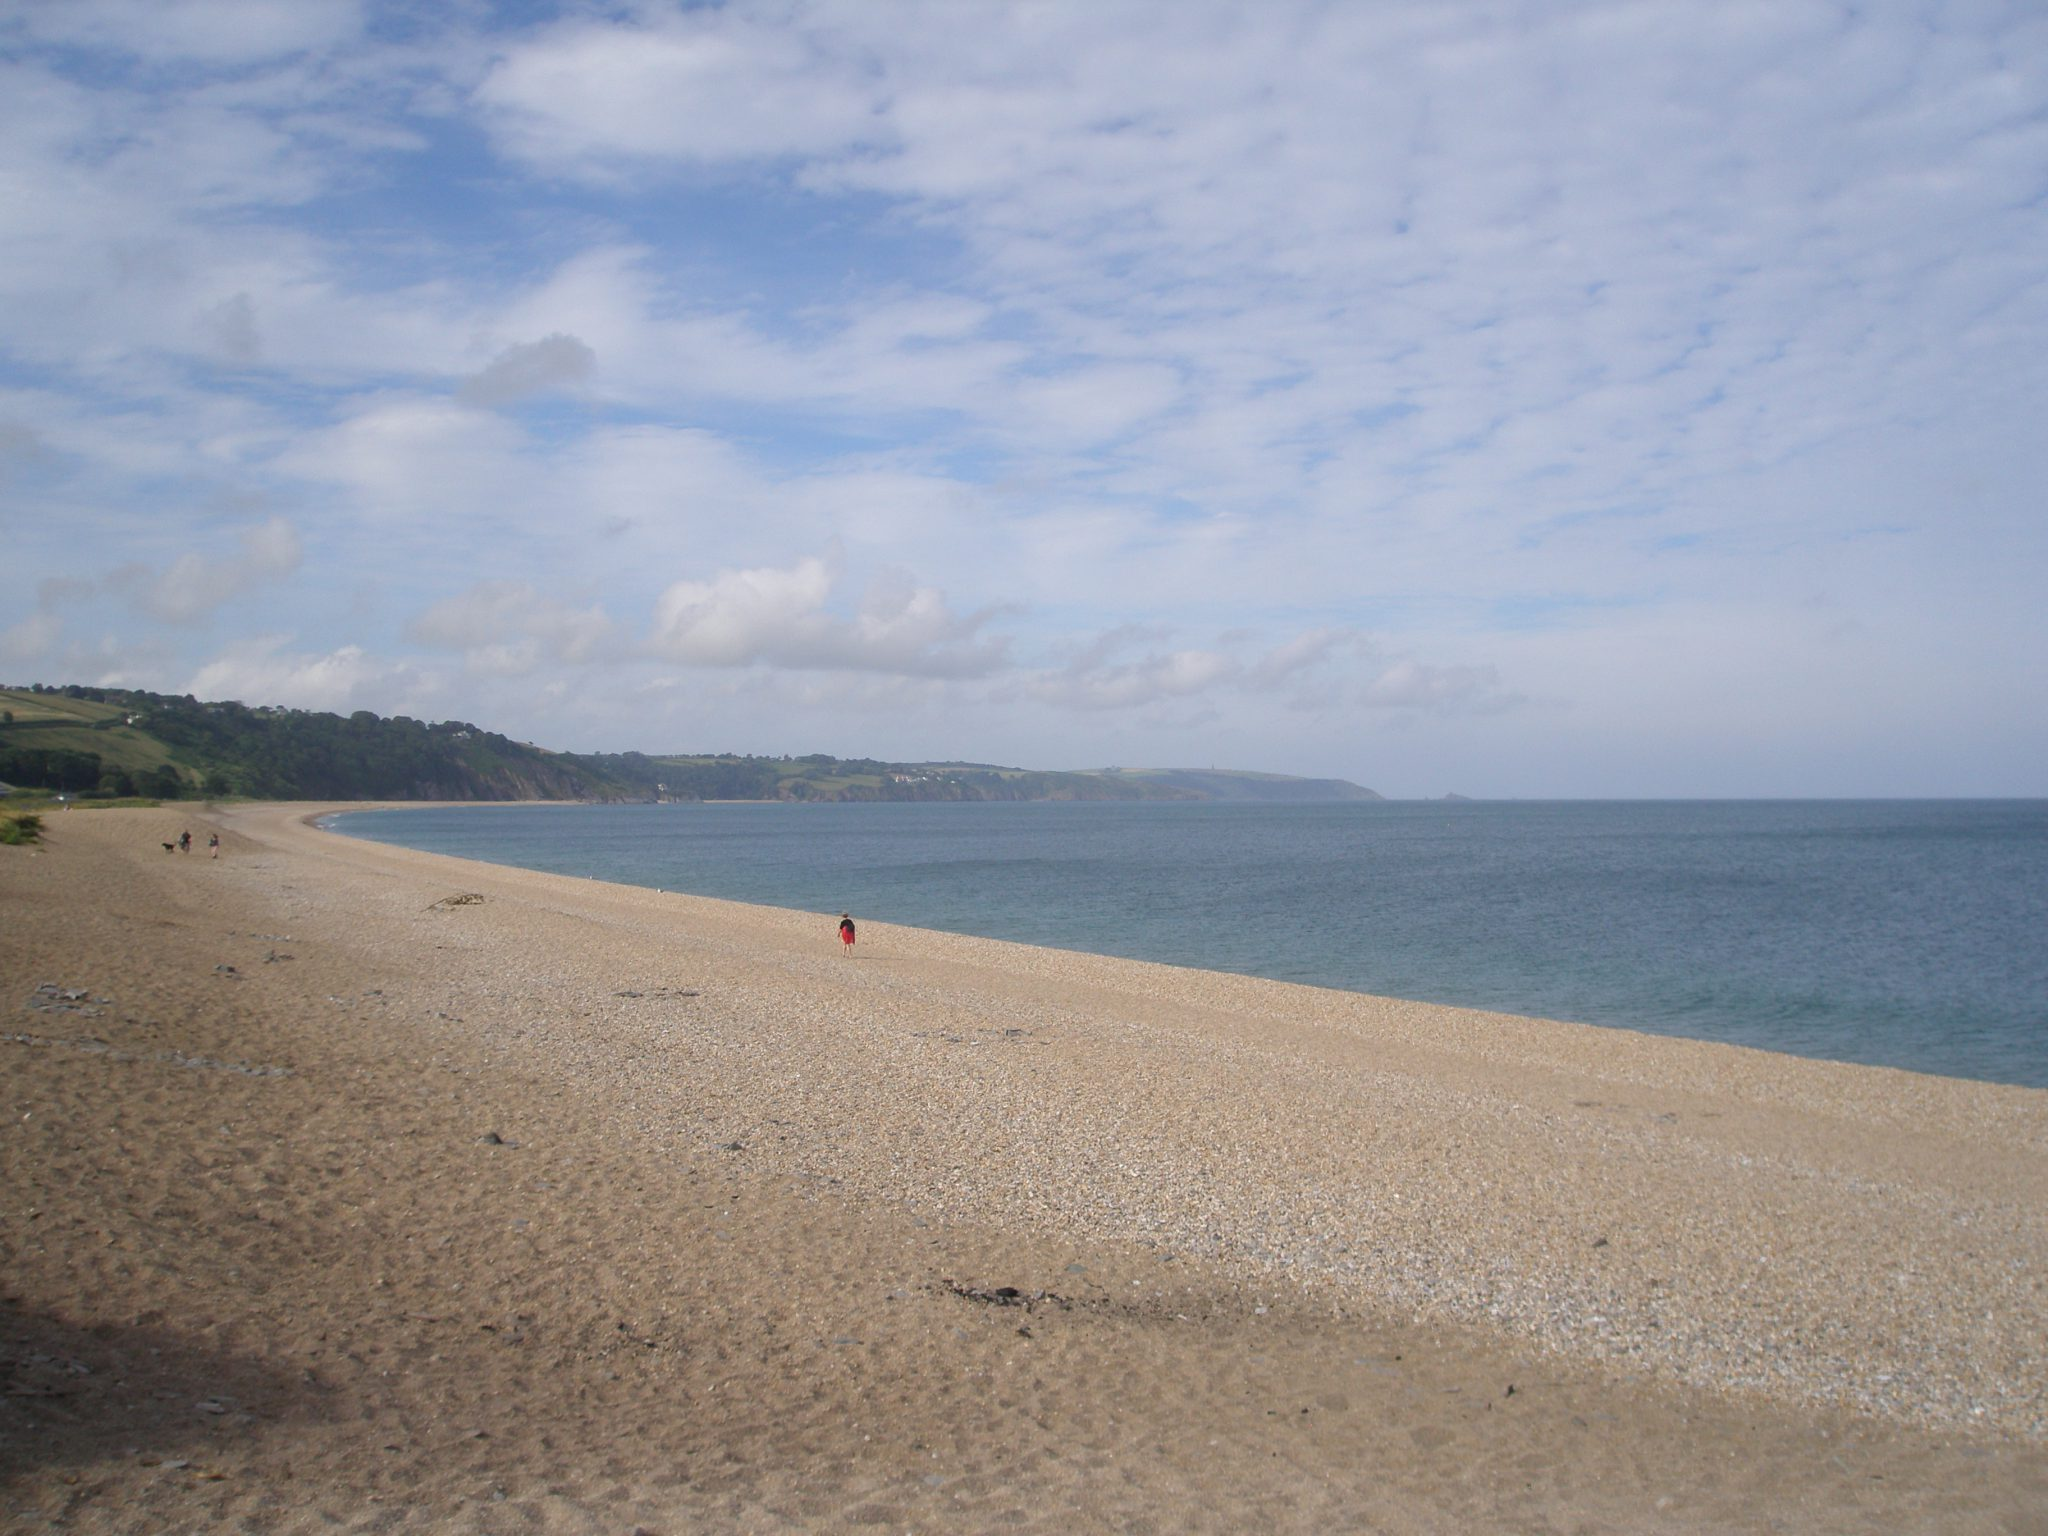 My view of Slapton Sands, on June 28, 2015.